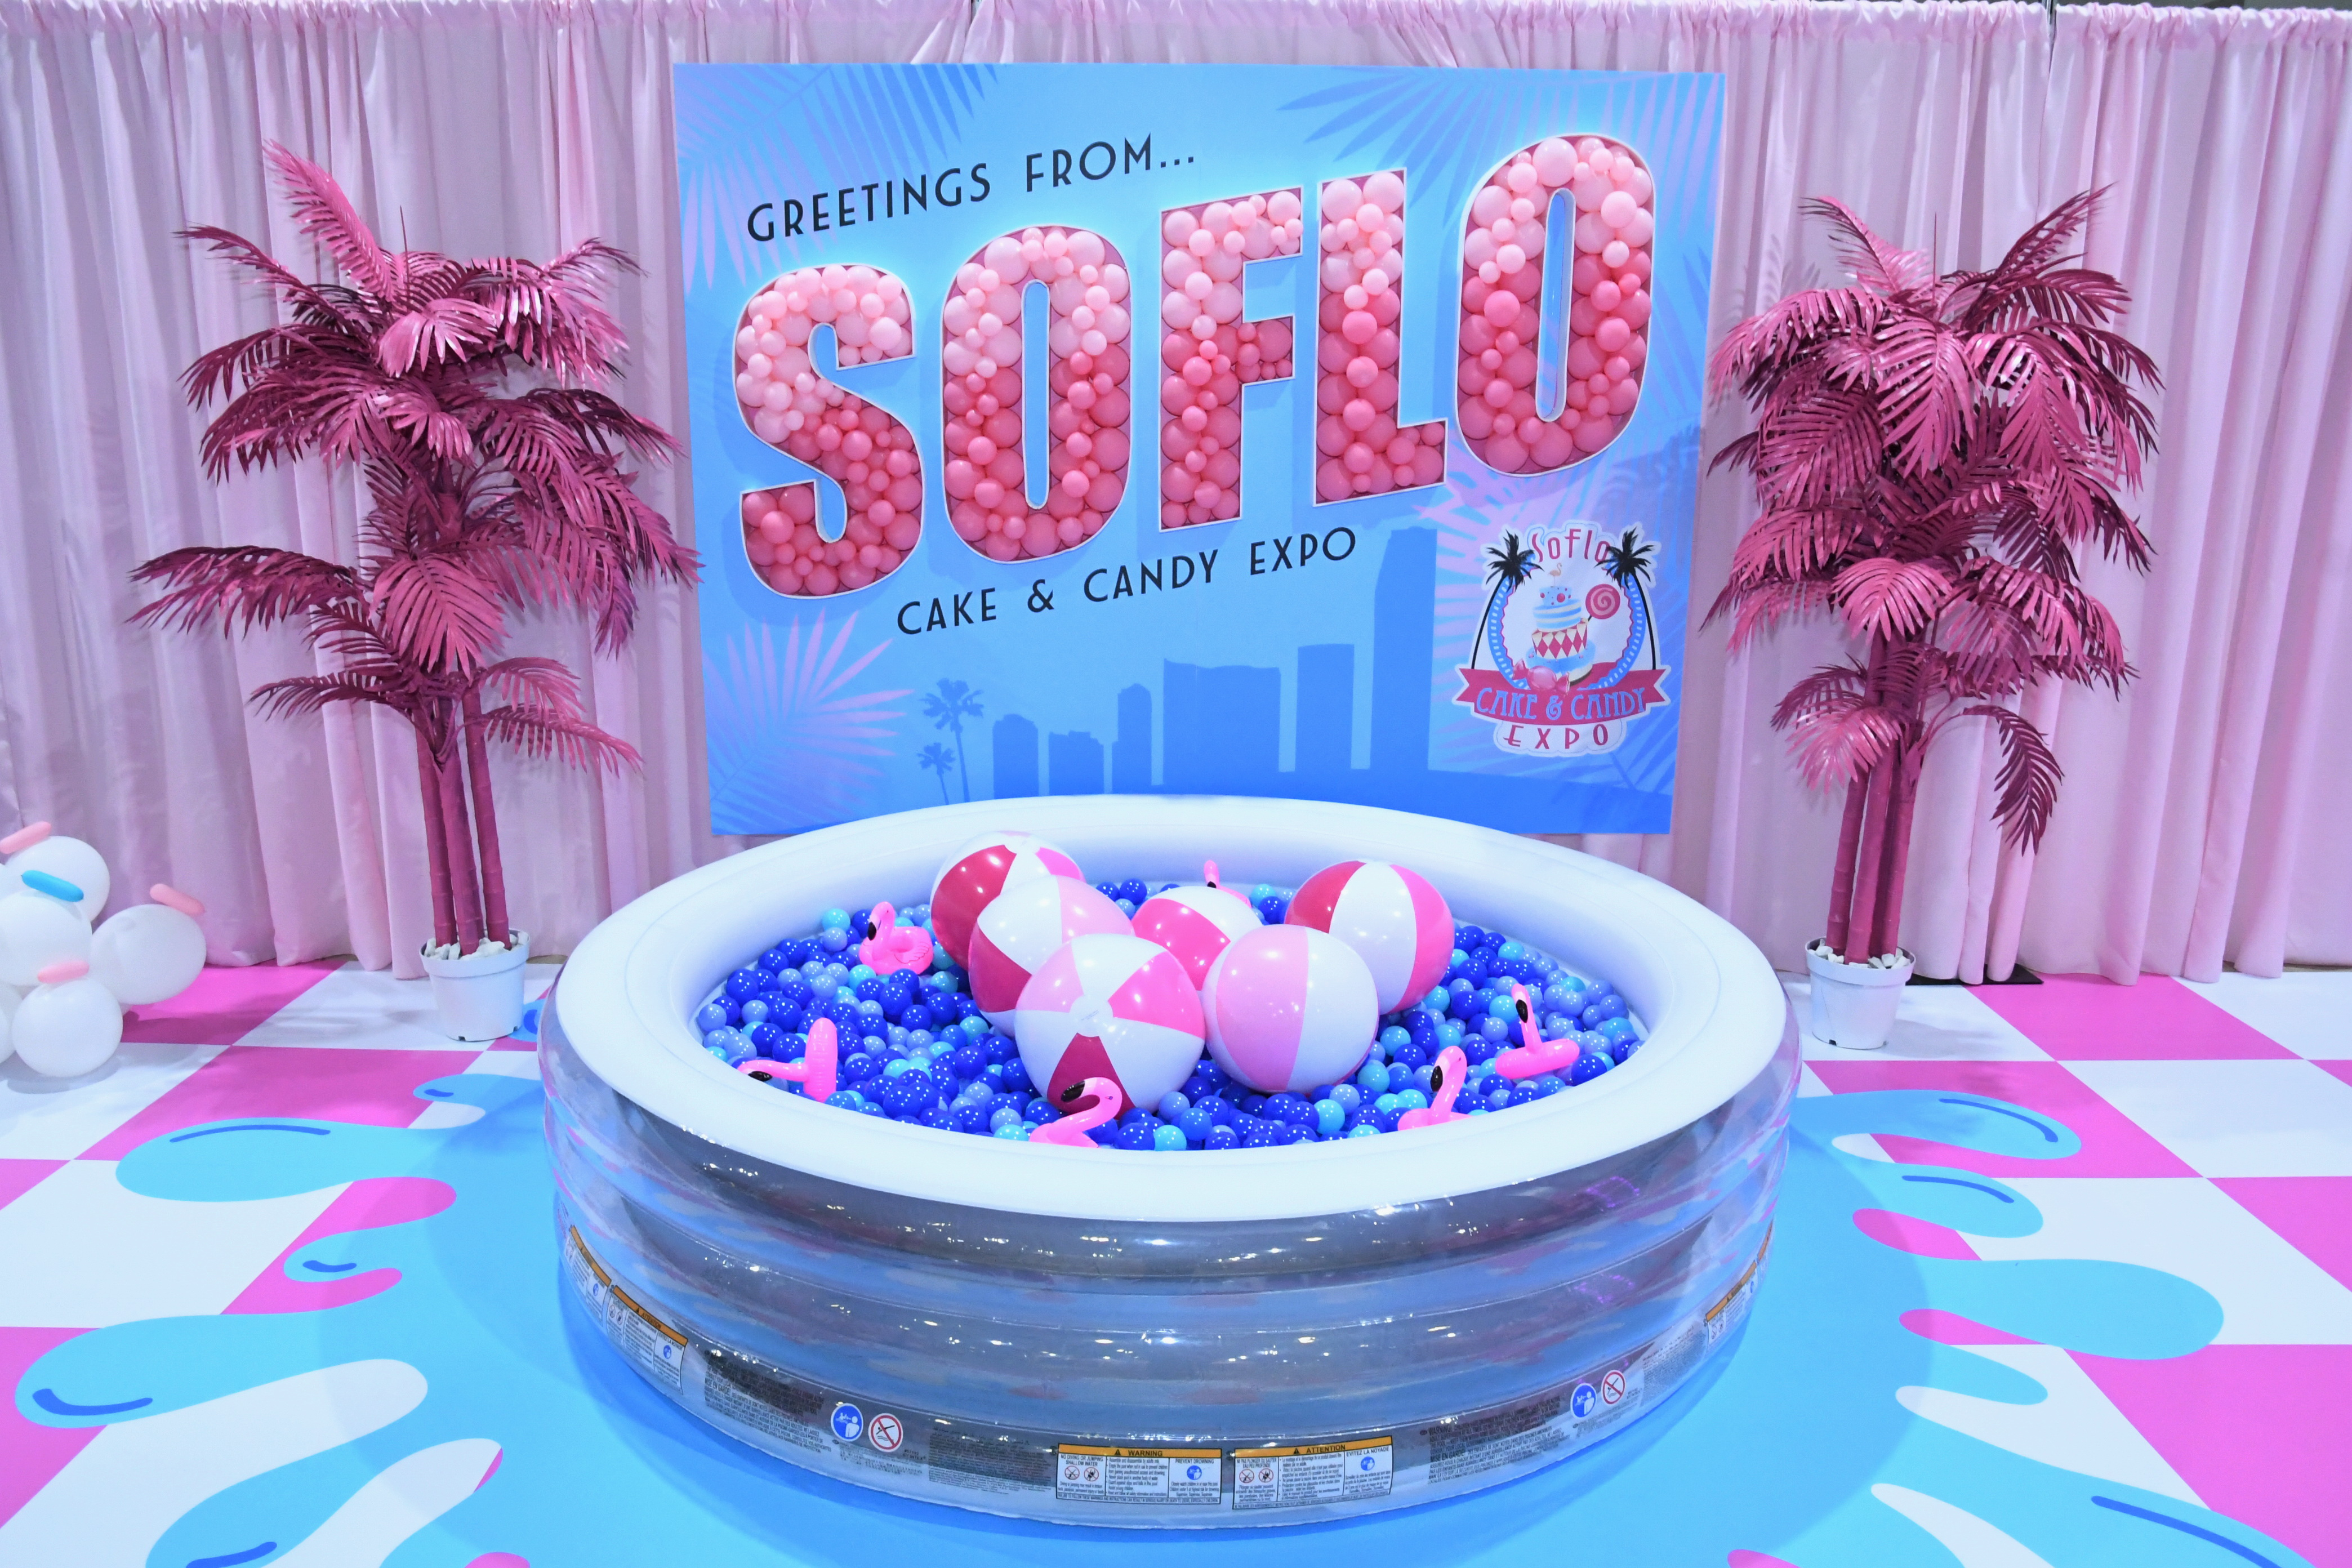 SoFlo Cake & Candy Expo - South Florida's Biggest Cake